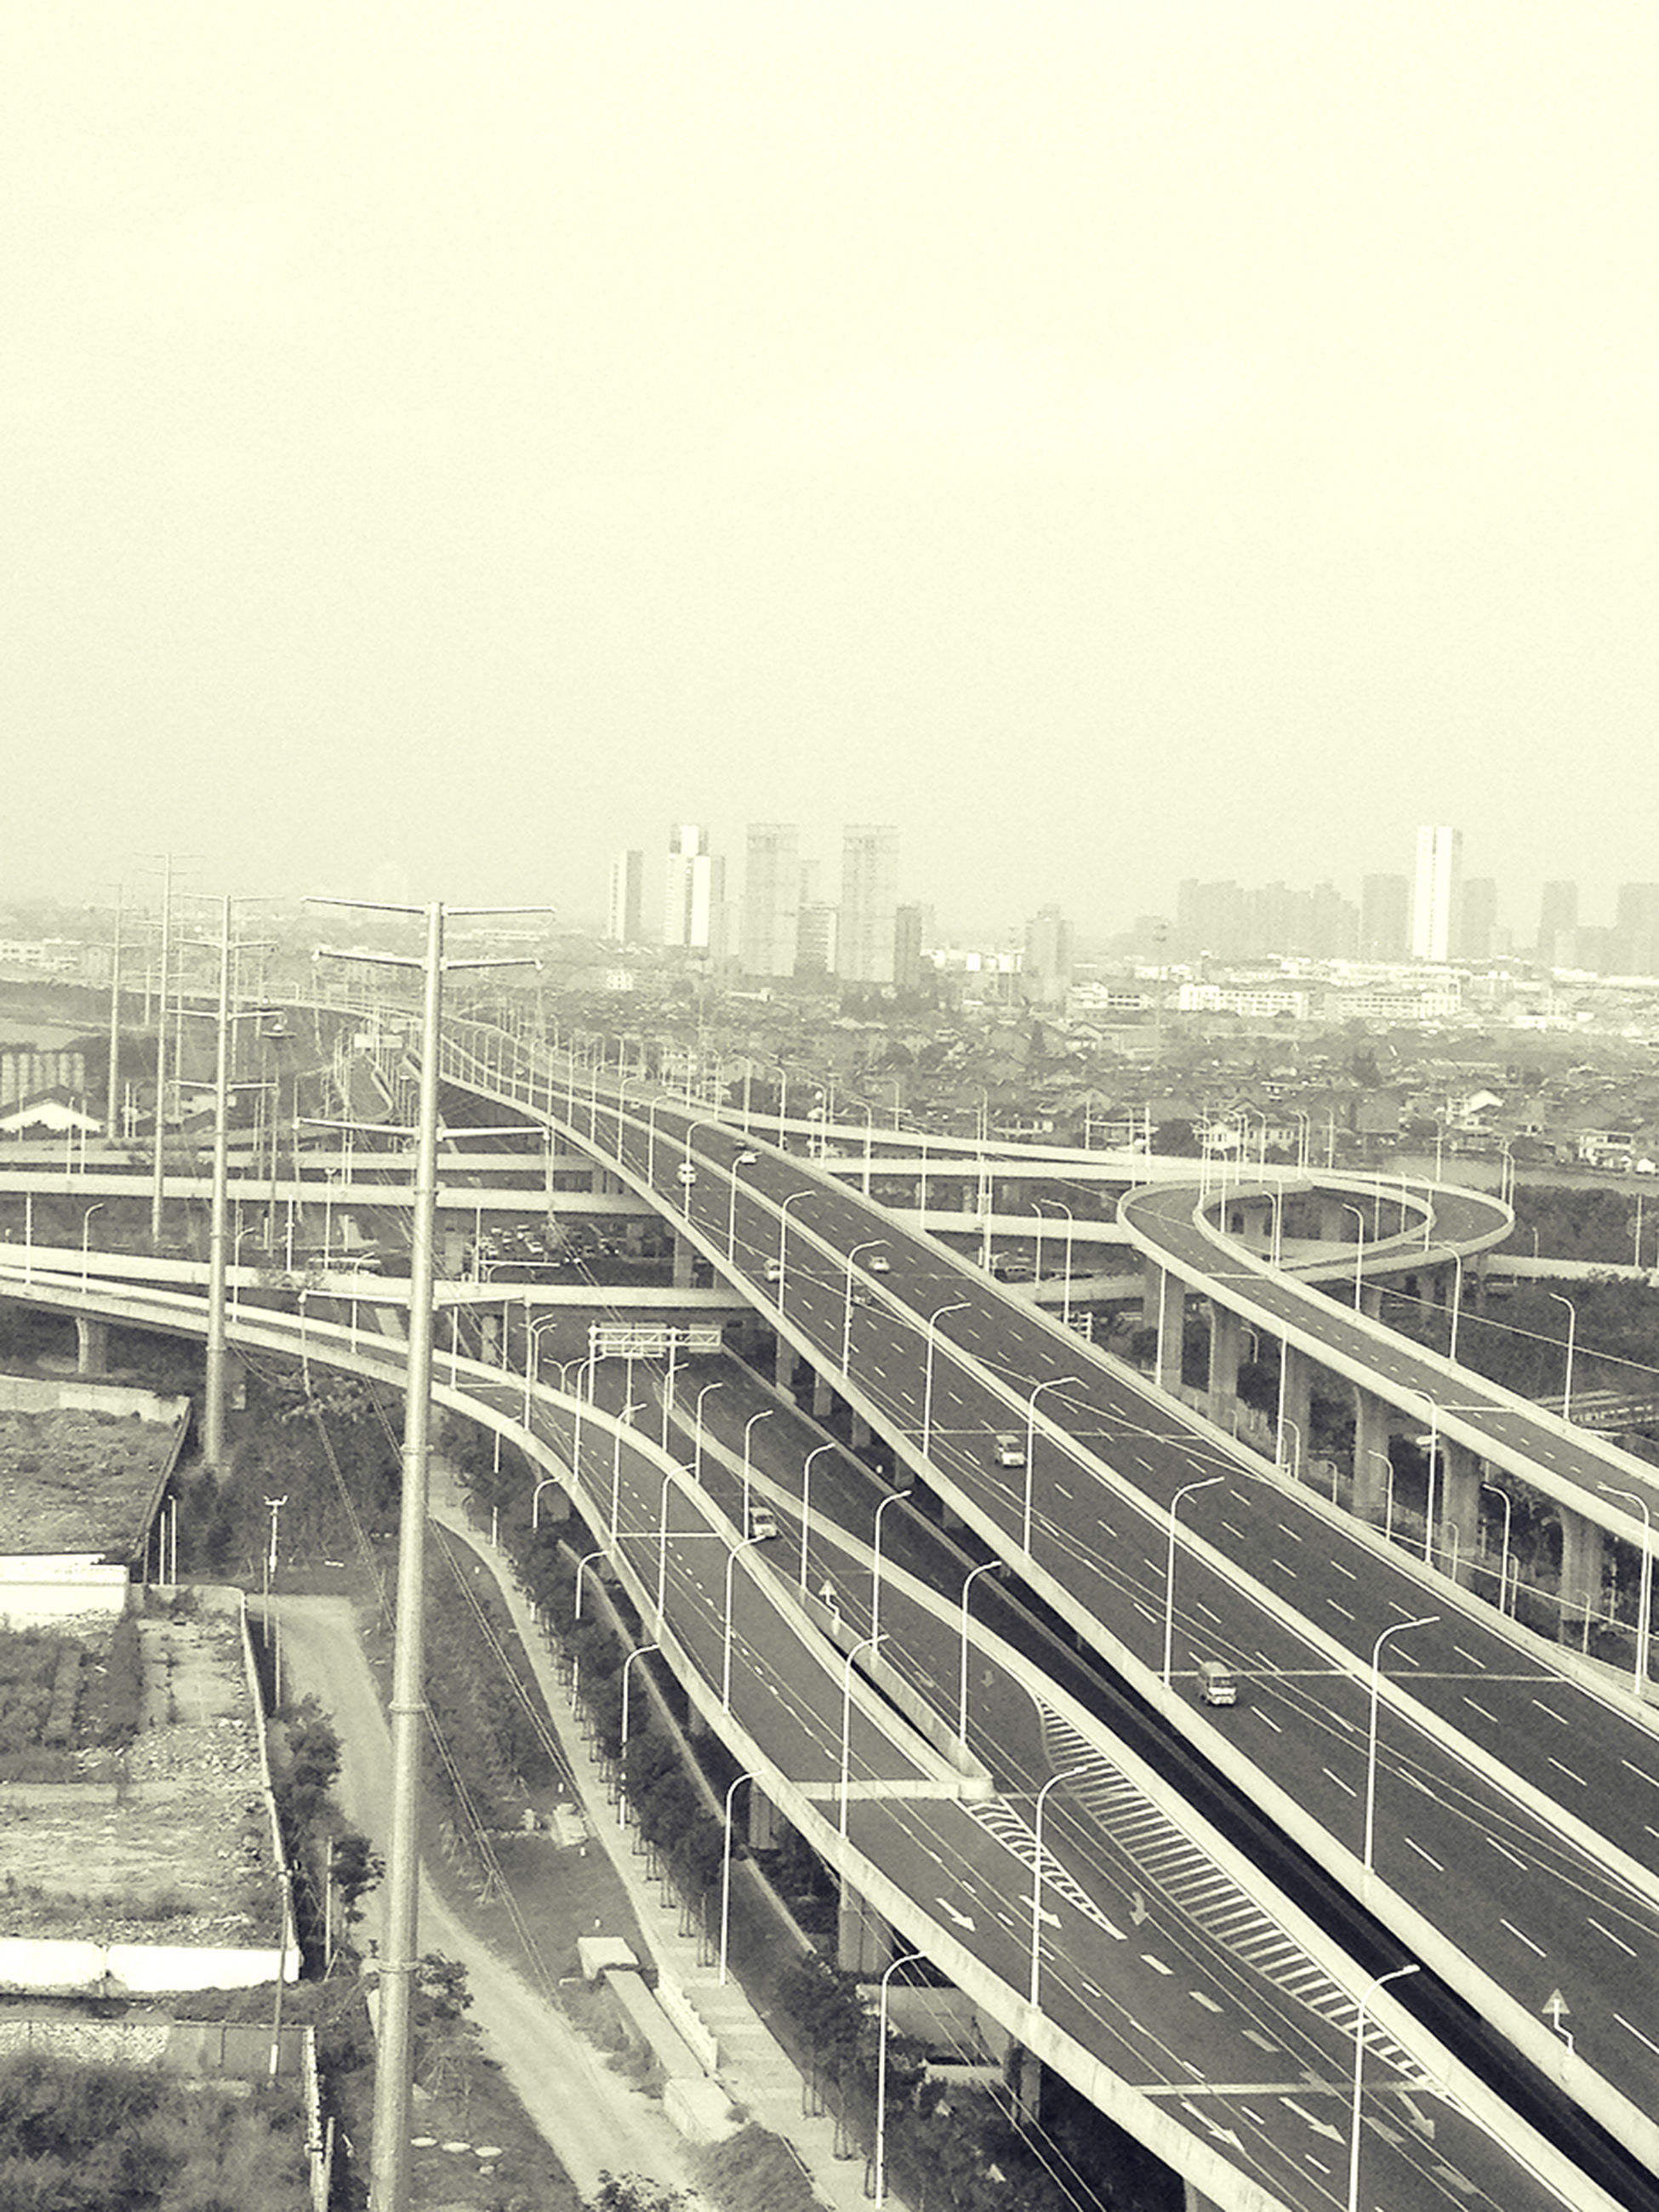 built structure, architecture, clear sky, building exterior, copy space, city, cityscape, high angle view, metal, day, outdoors, no people, development, sky, railing, bridge - man made structure, foggy, construction site, industry